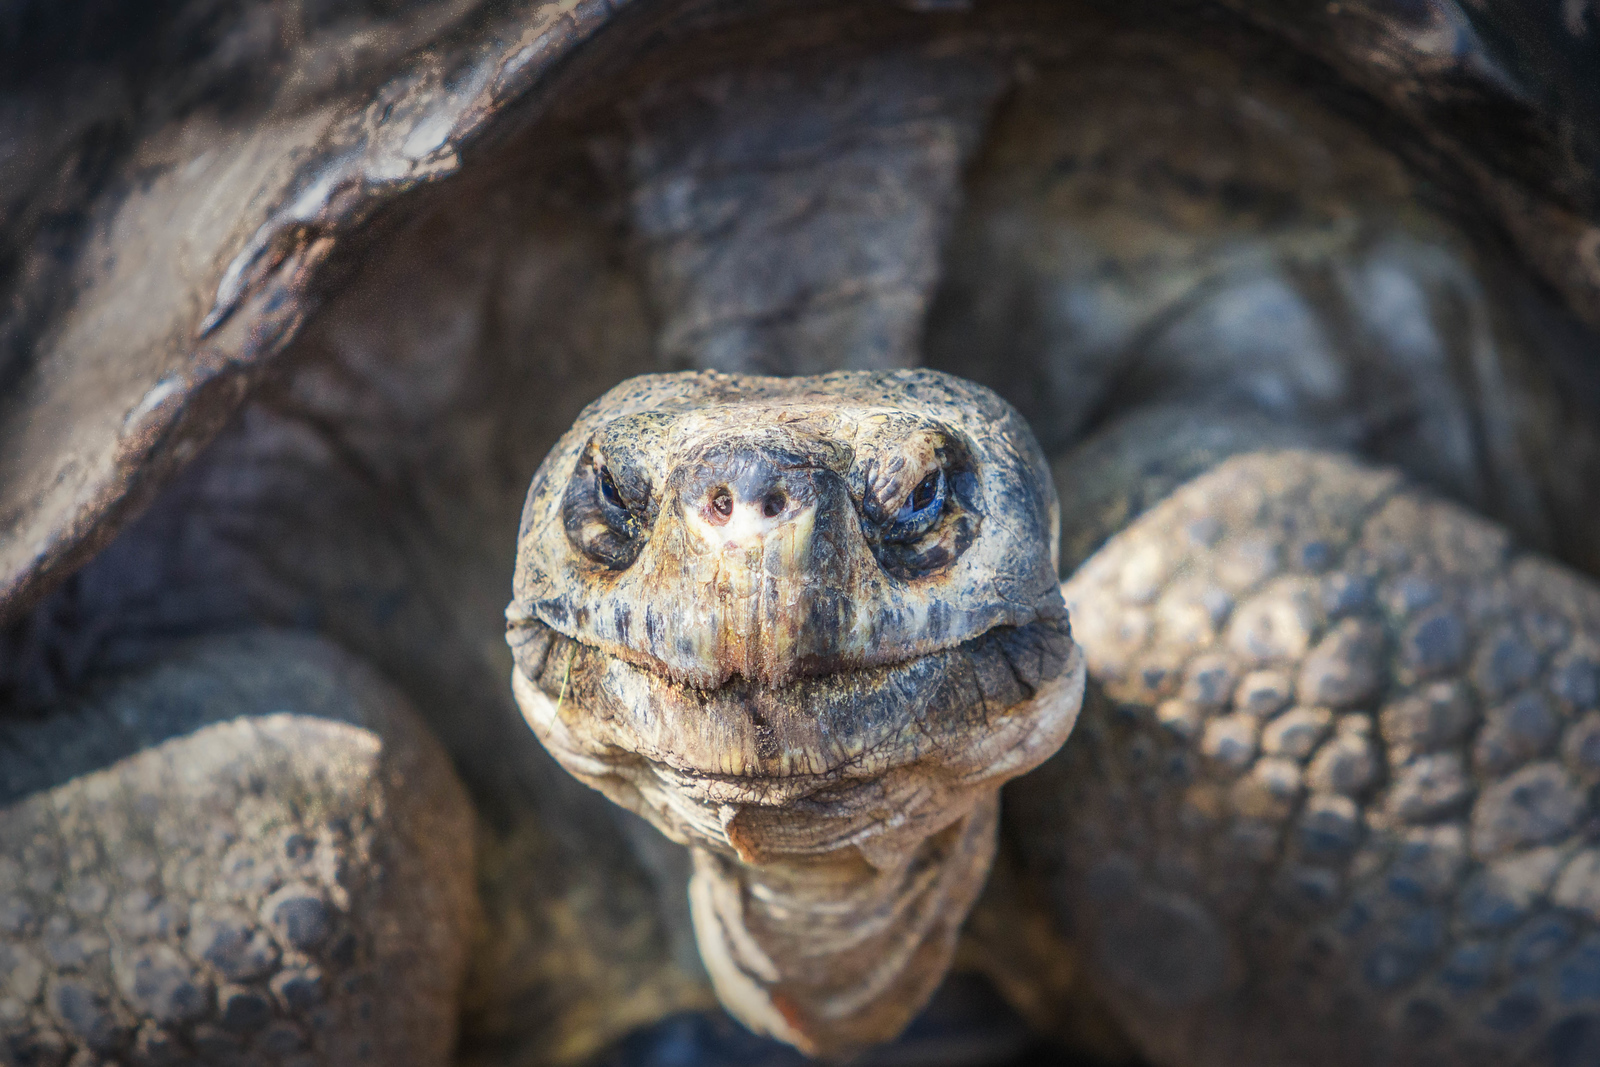 The Galapagos Tortoise is something not to miss.